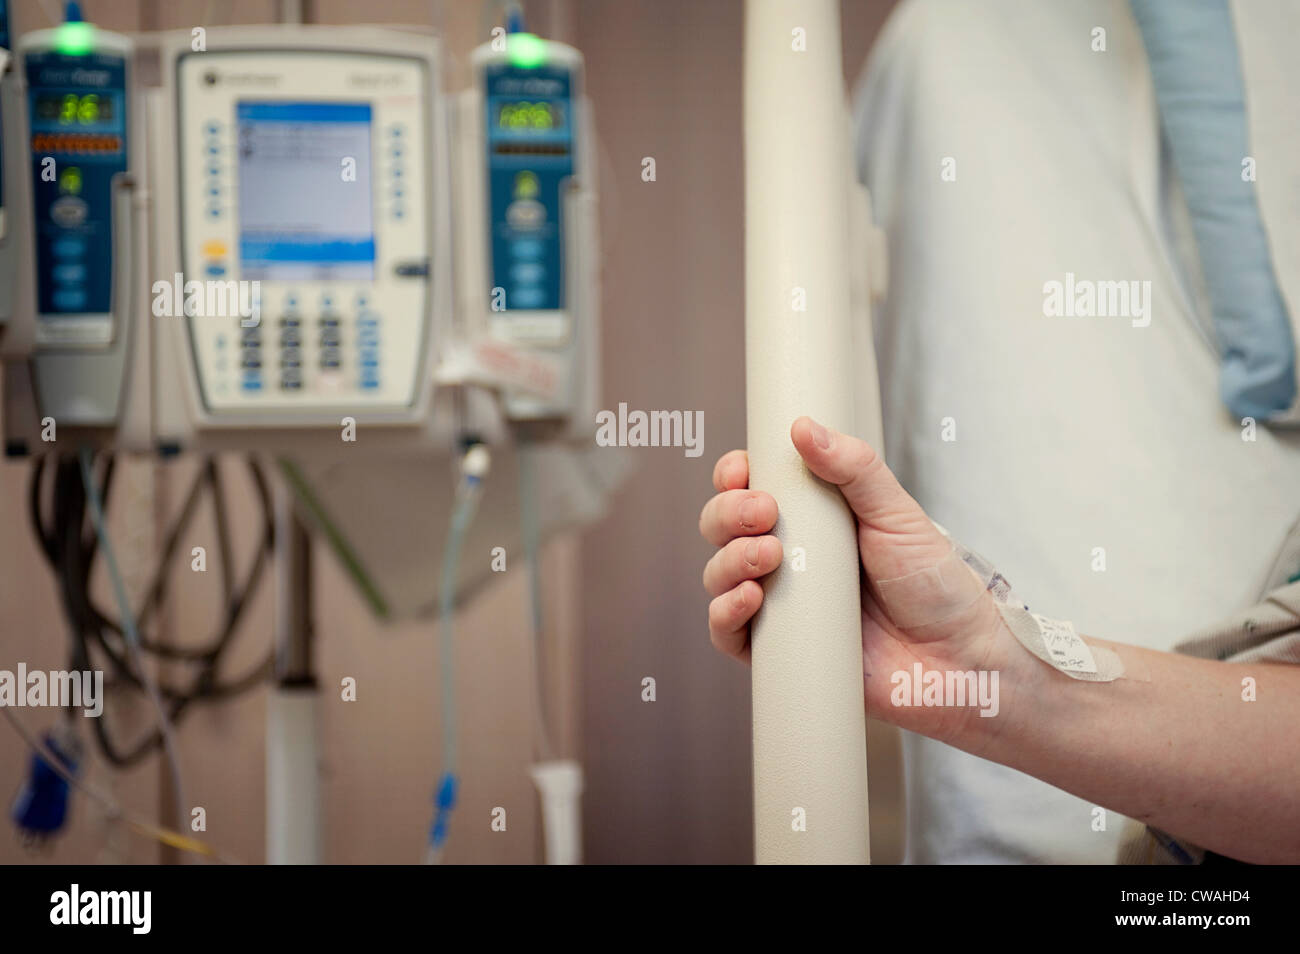 Woman gripping hospital bed with hand - Stock Image